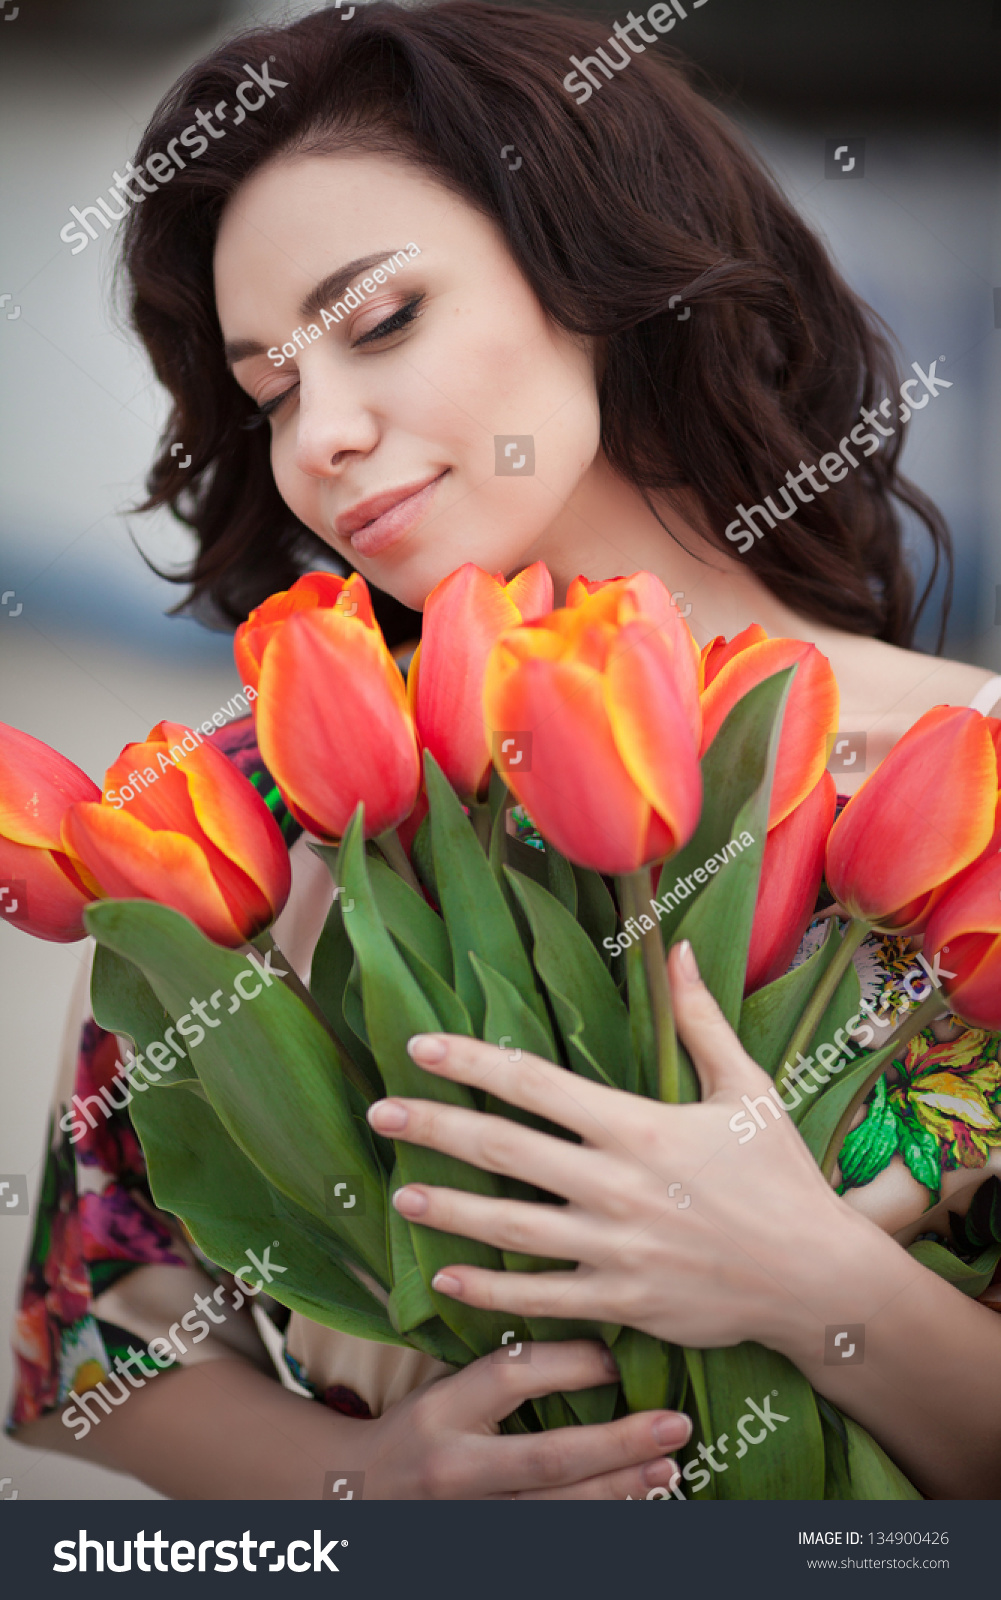 Beautiful woman flowers bouquet spring park stock photo royalty beautiful woman with flowers bouquet in spring park outdoors romantic sexy girl with tulips flowers izmirmasajfo